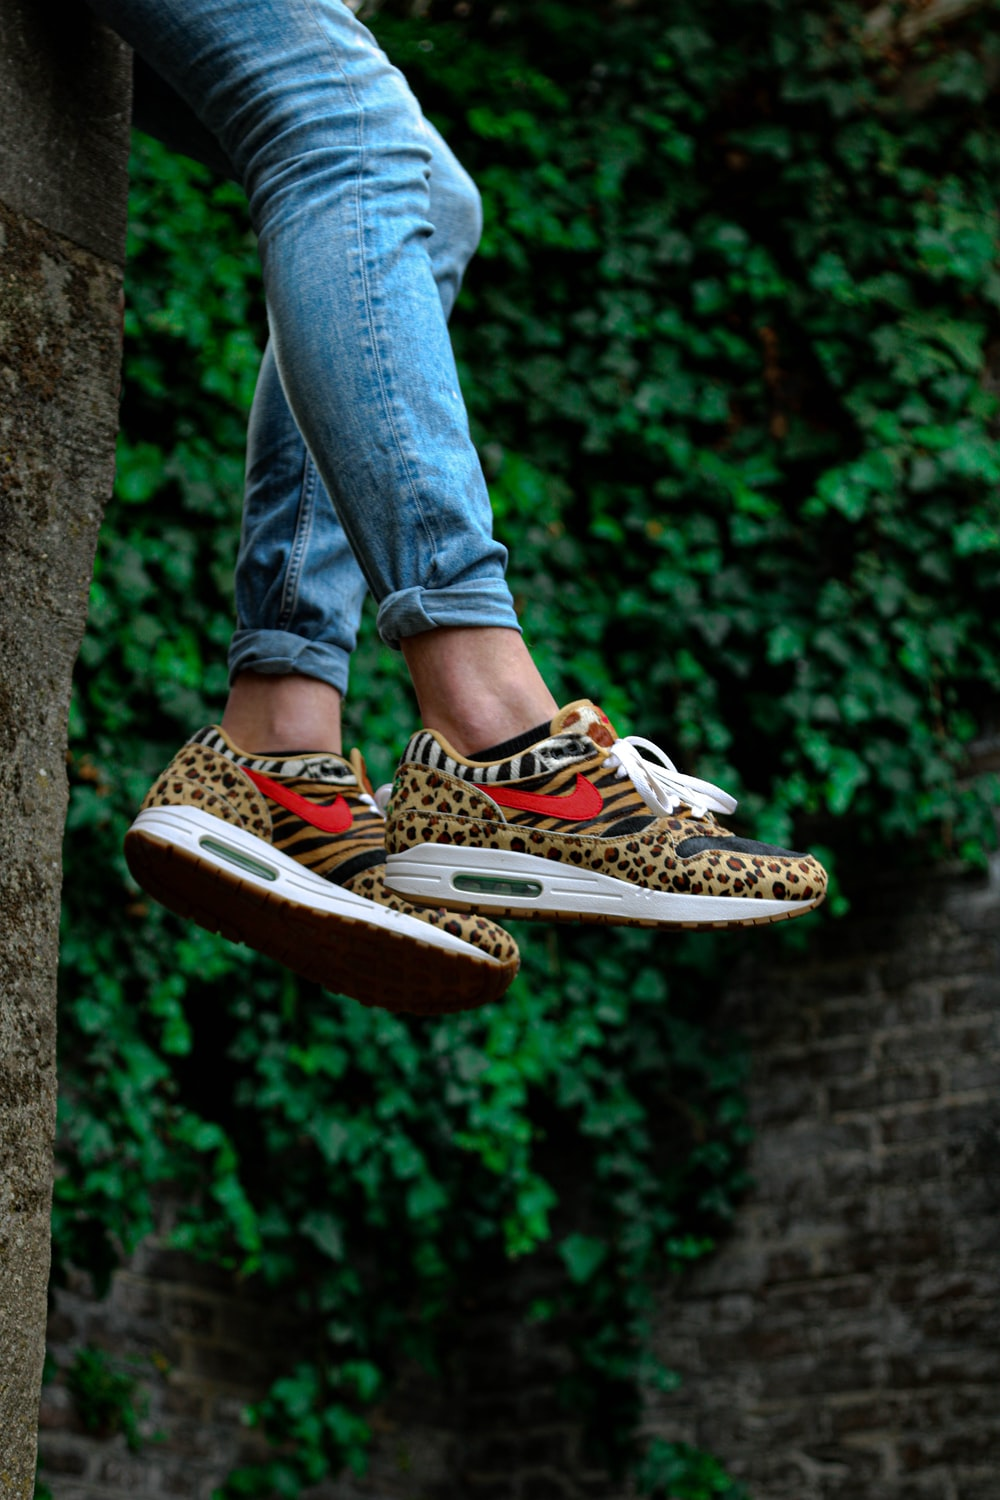 person wearing leopard print sneakers